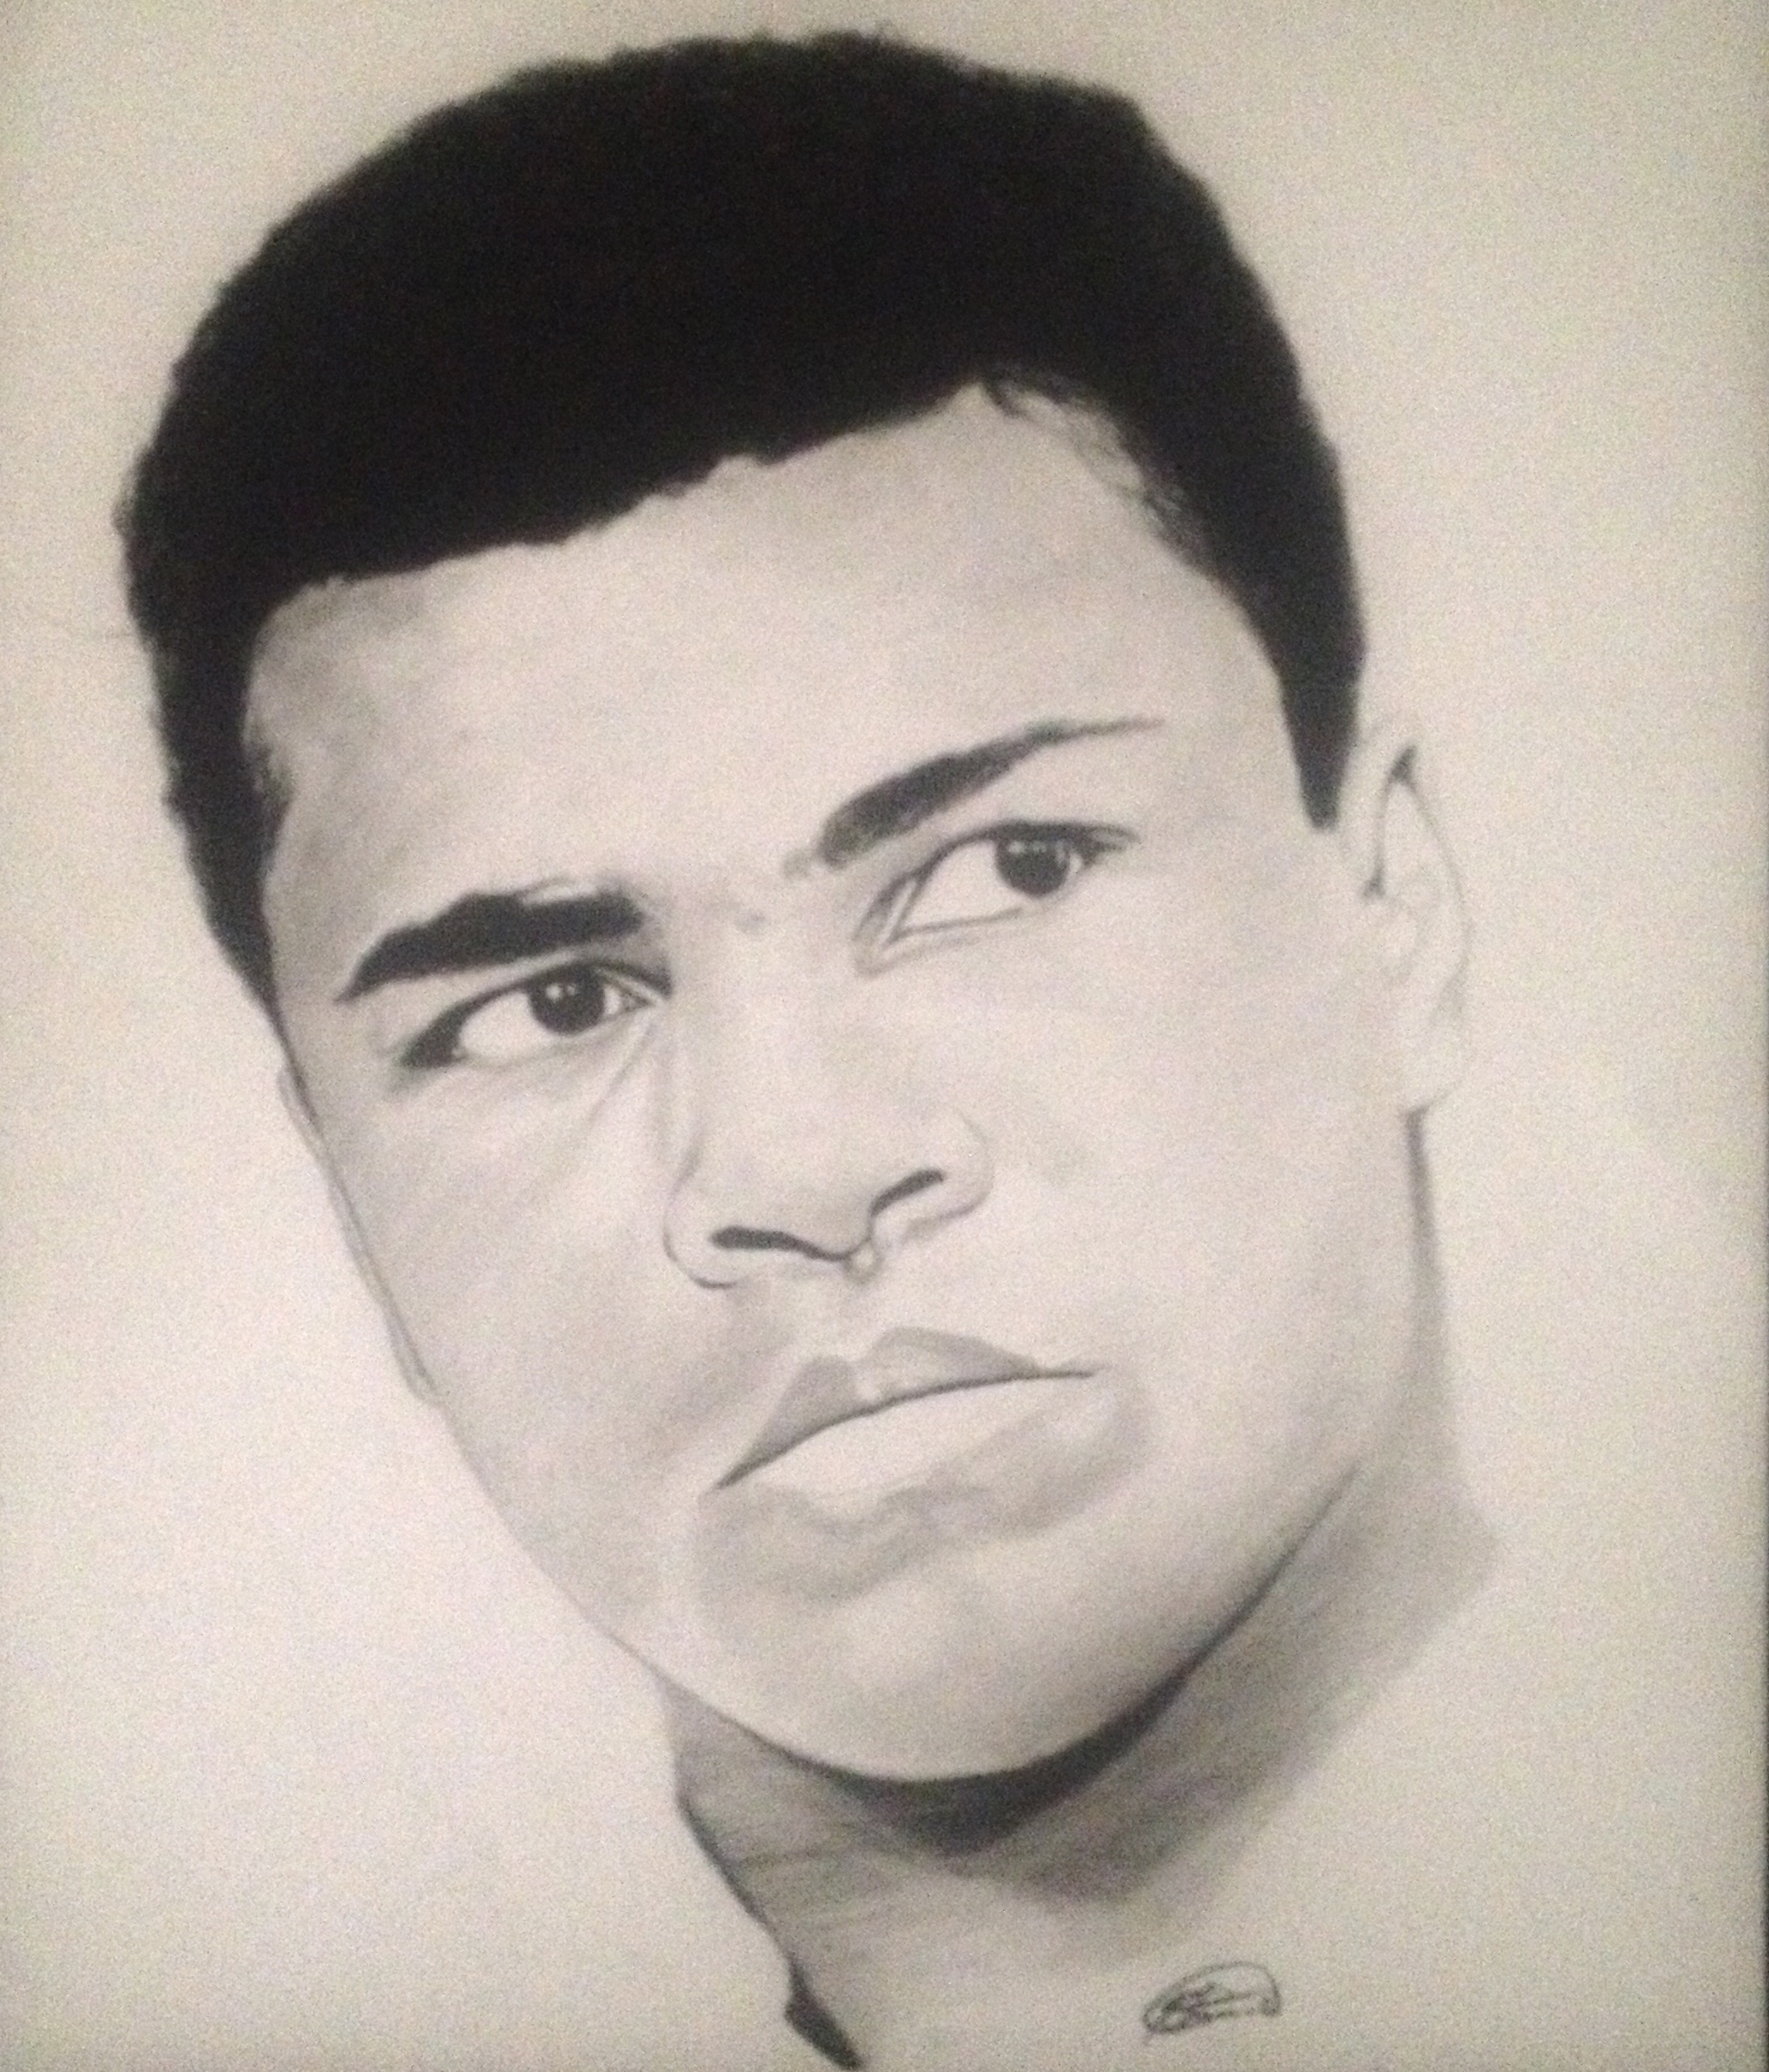 biography of muhammad ali cassius marcellus clay Muhammad ali (cassius marcellus clay, jr) is born muhammad ali (born cassius marcellus clay jr january 17, 1942) is a retired american boxer and three-time world heavyweight champion, who is.